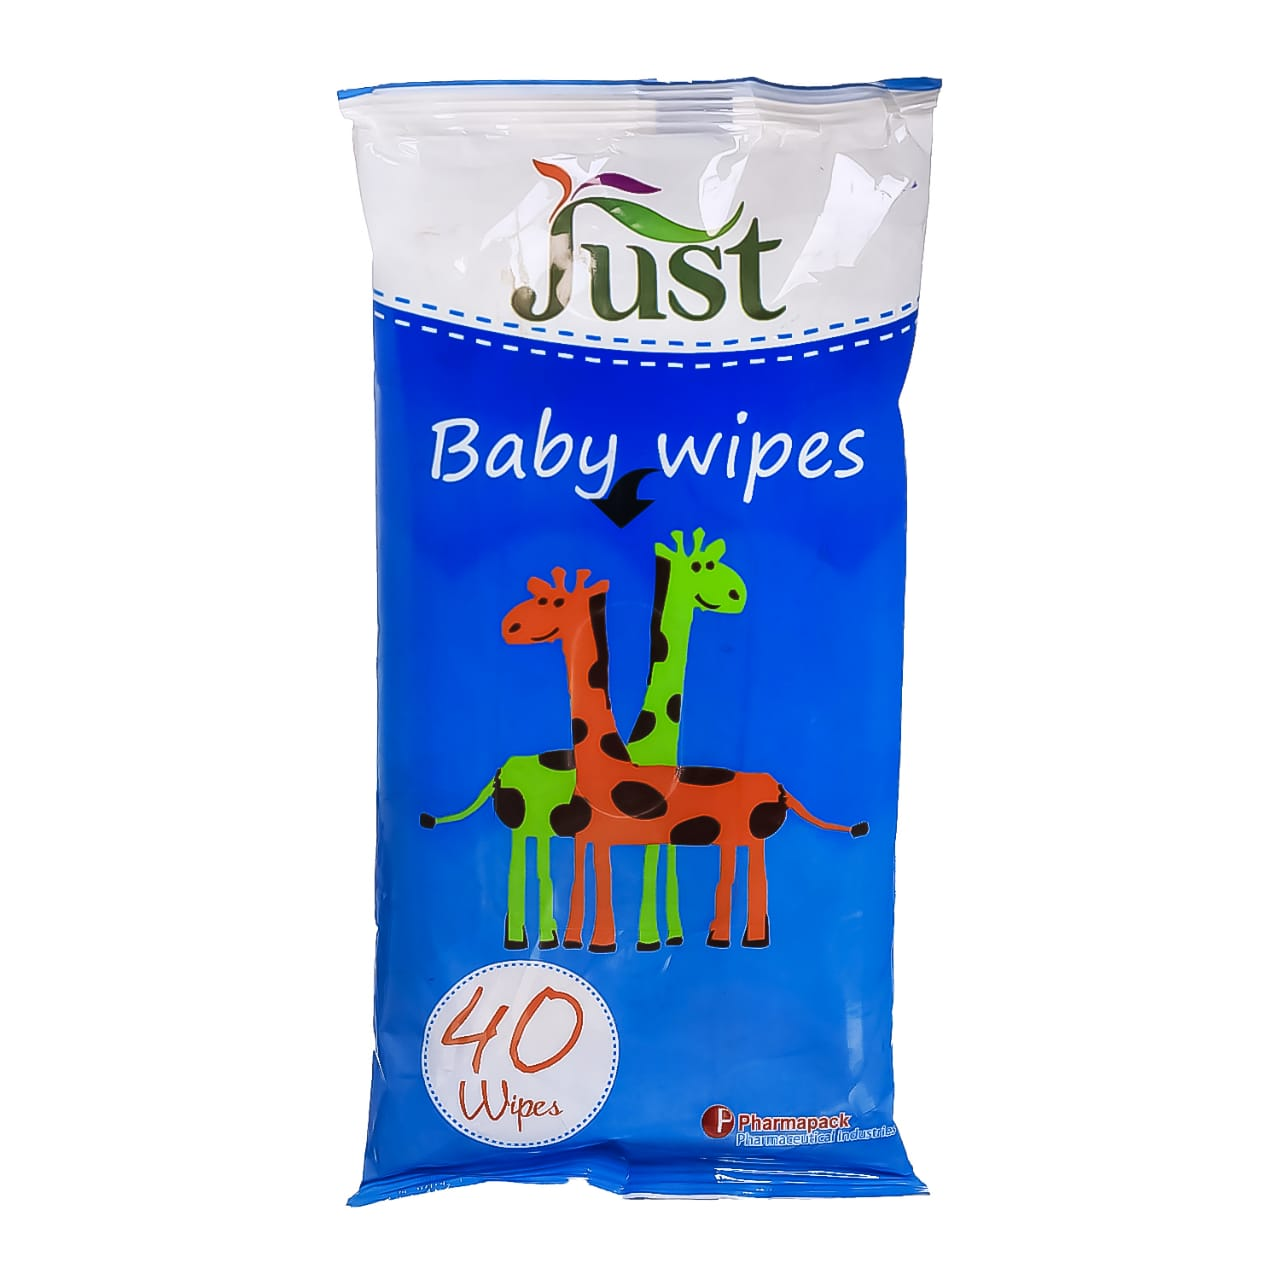 Just wet wipes(40)